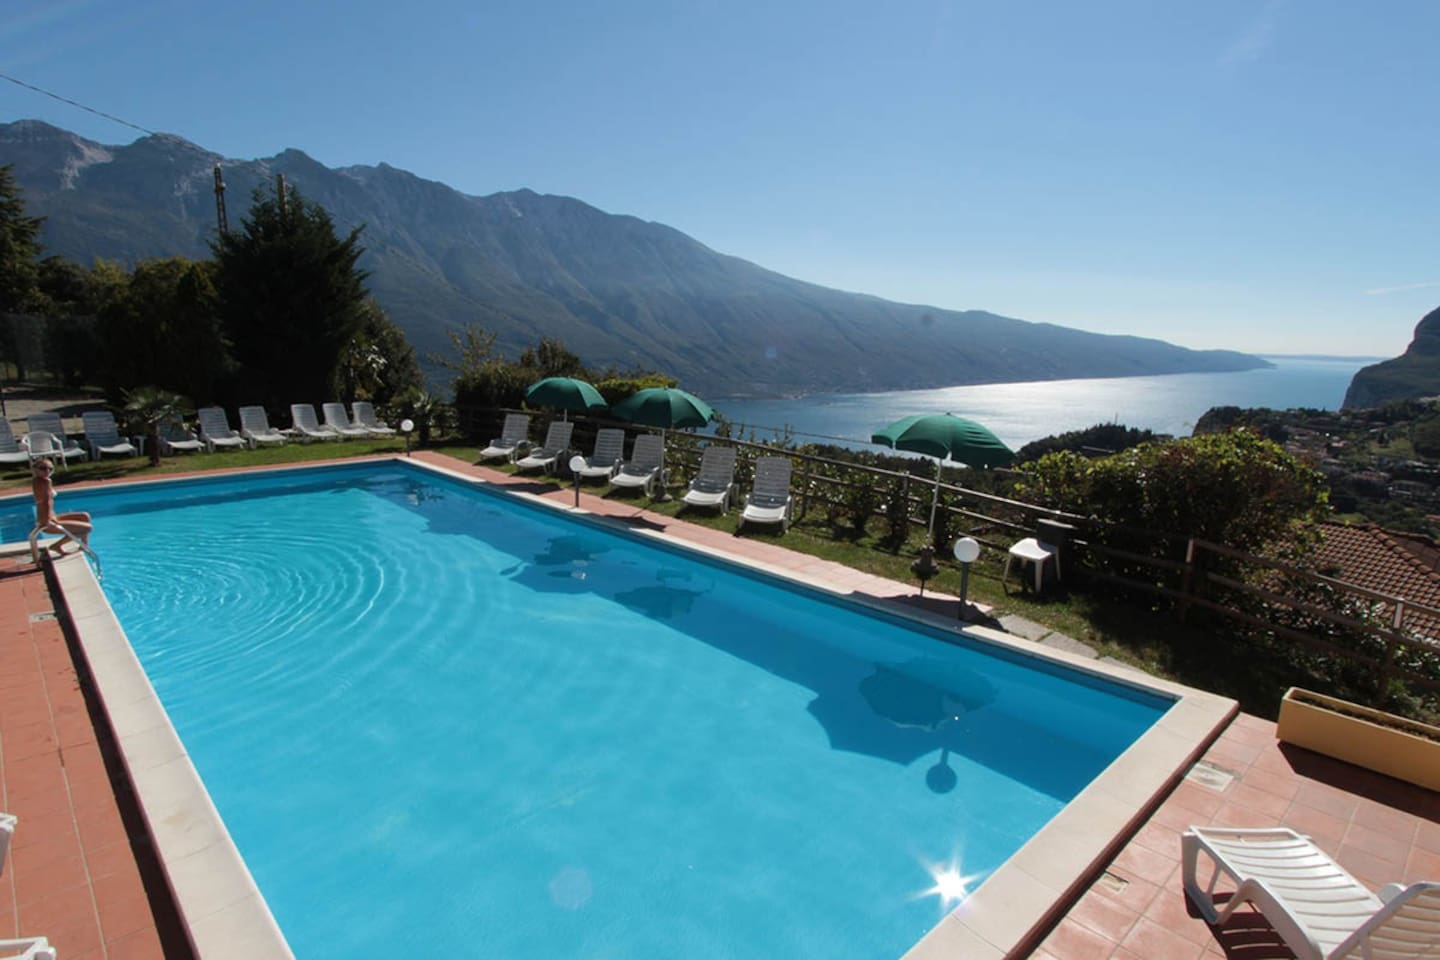 Outdoor pool (in common with other guests)